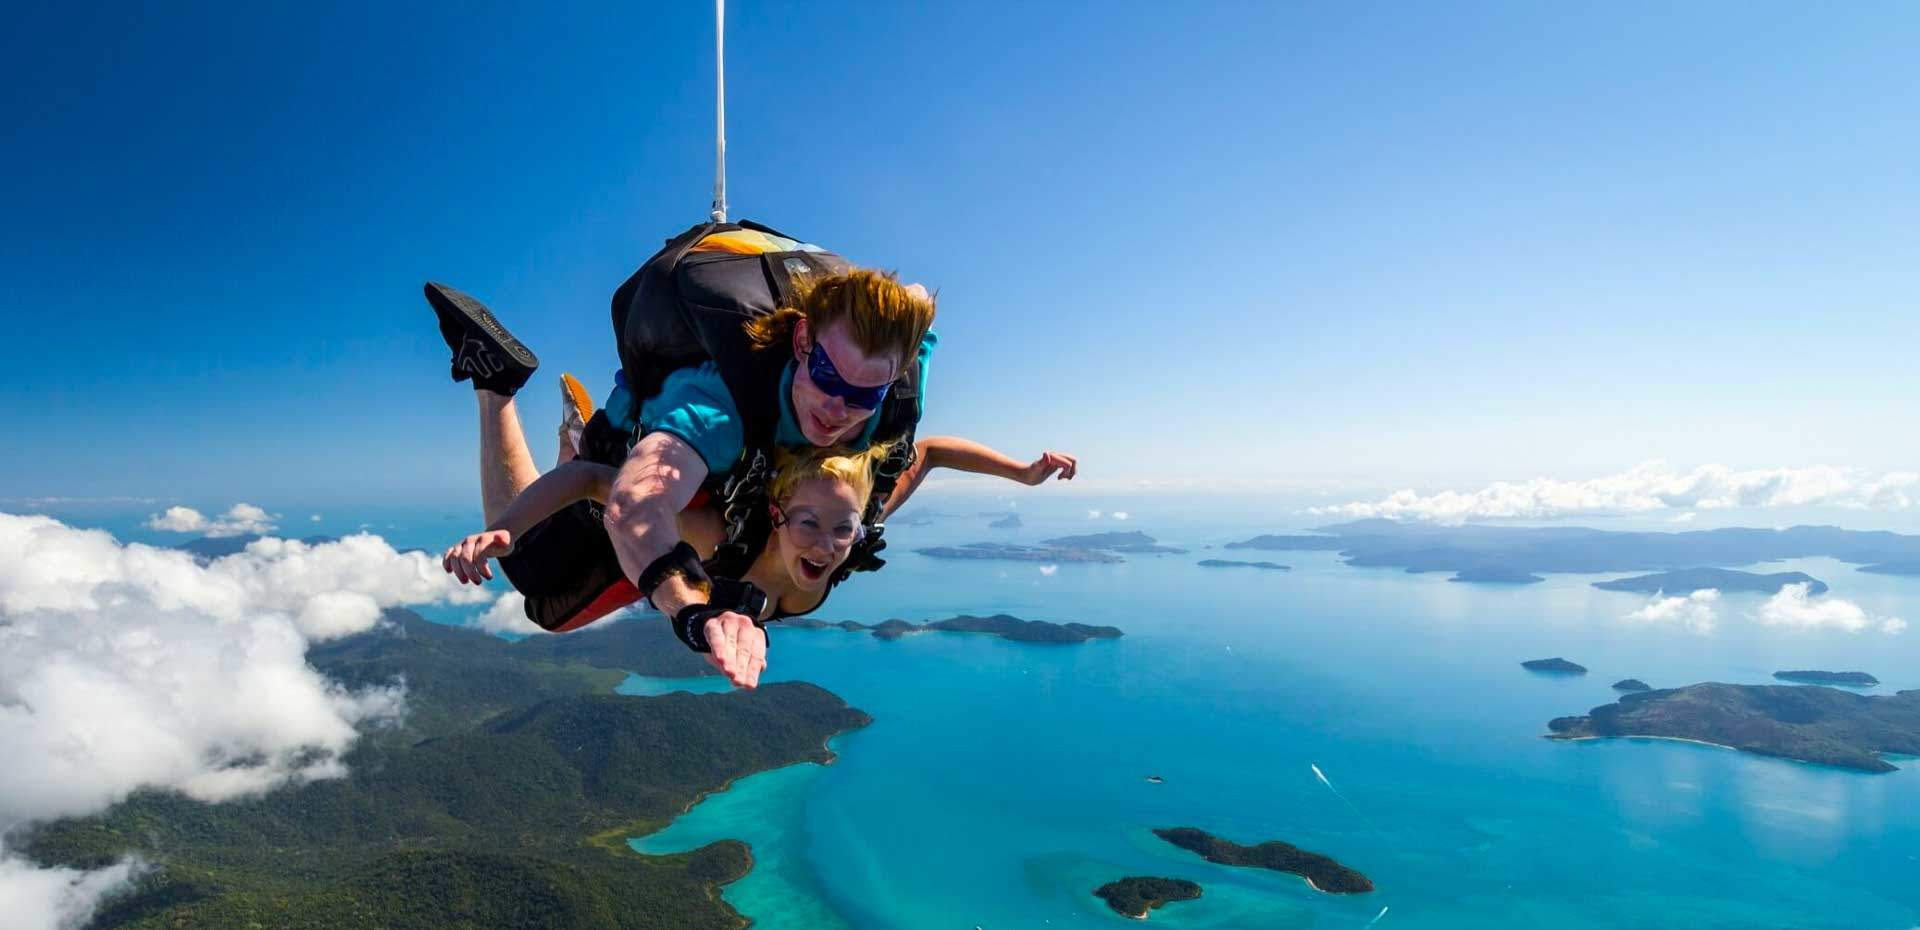 freefalling on a skydive from airlie beach